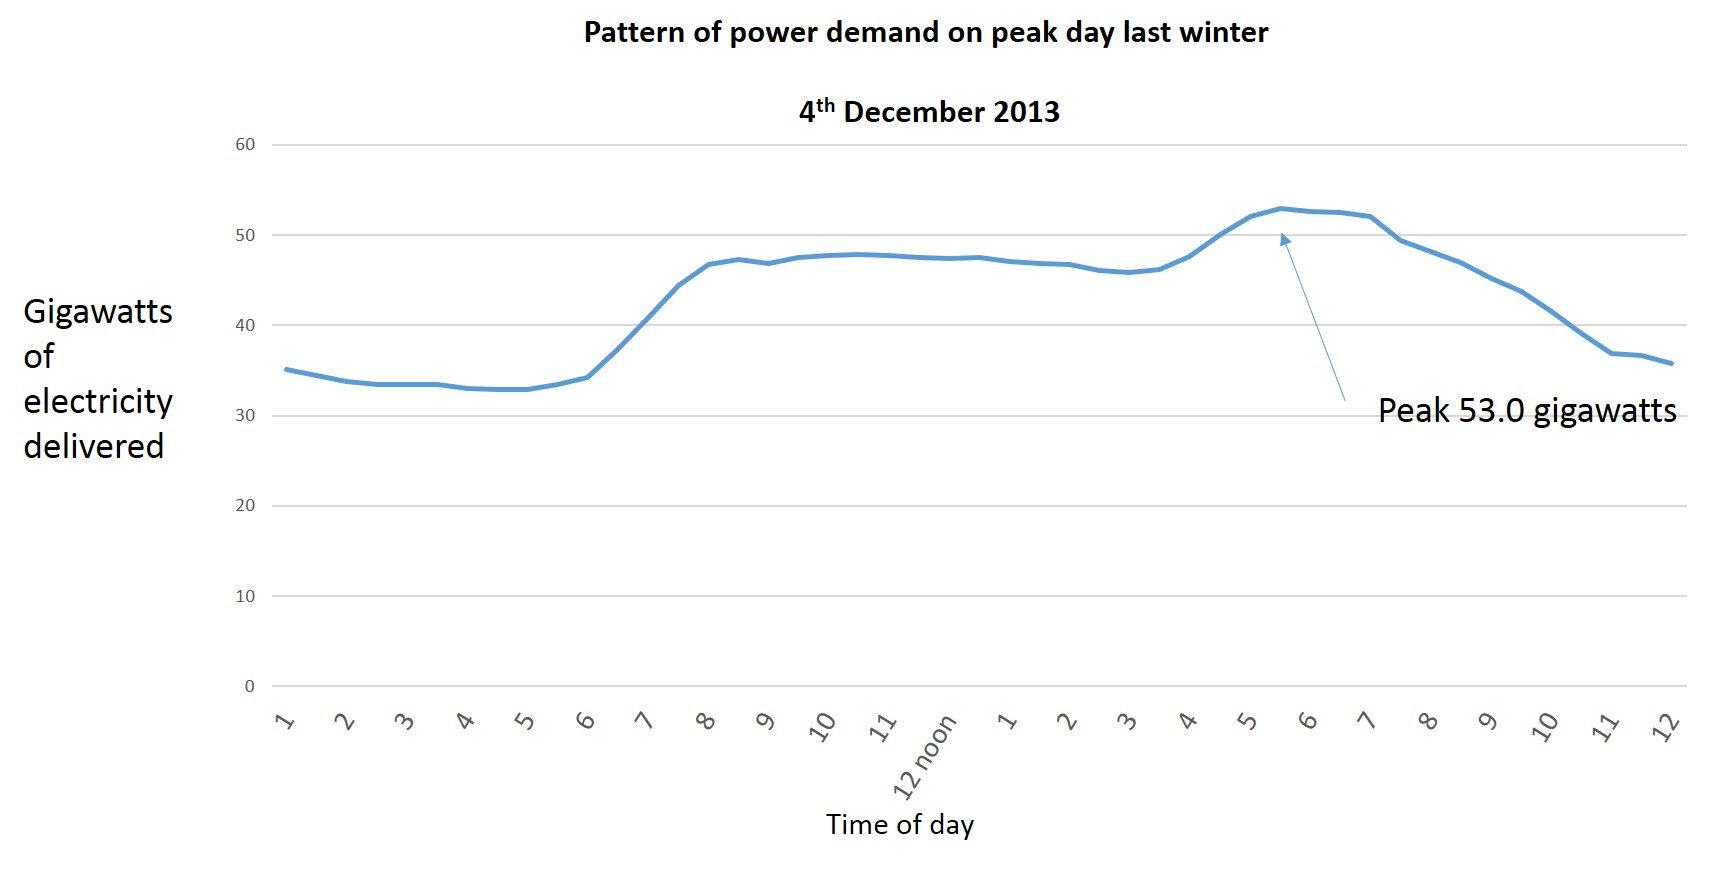 National electricity demand over 4th December 2013